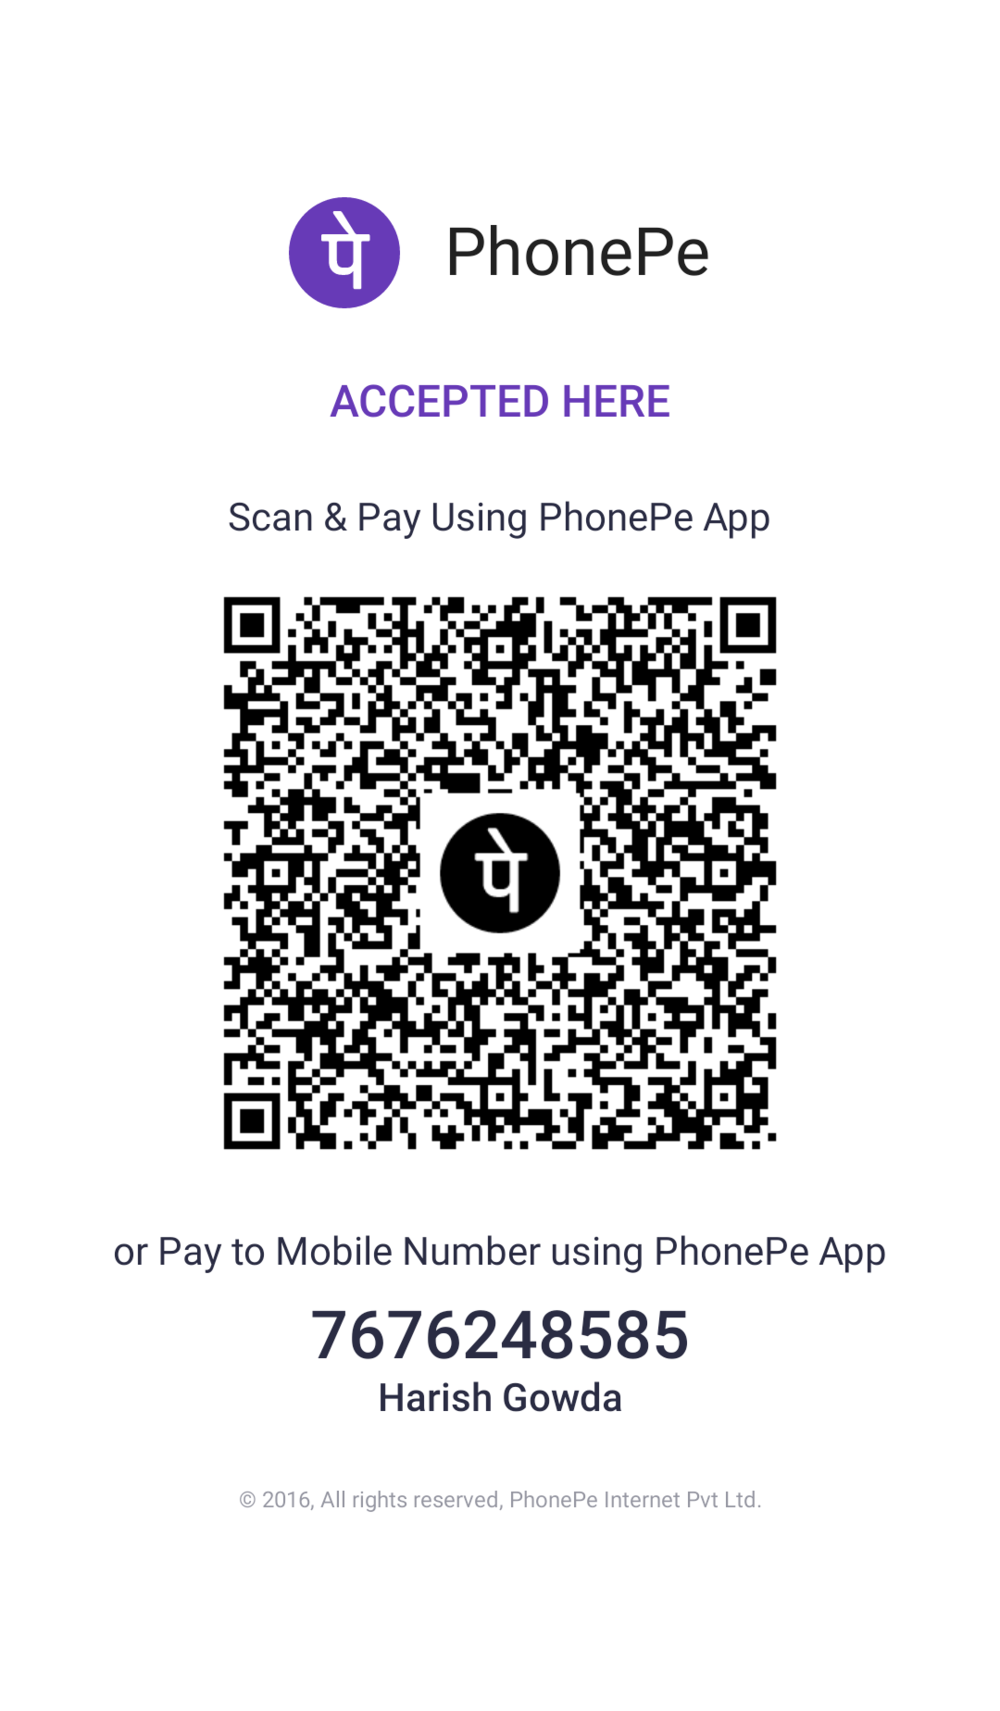 SCAN THE PAYTM QR CODE TO PAY